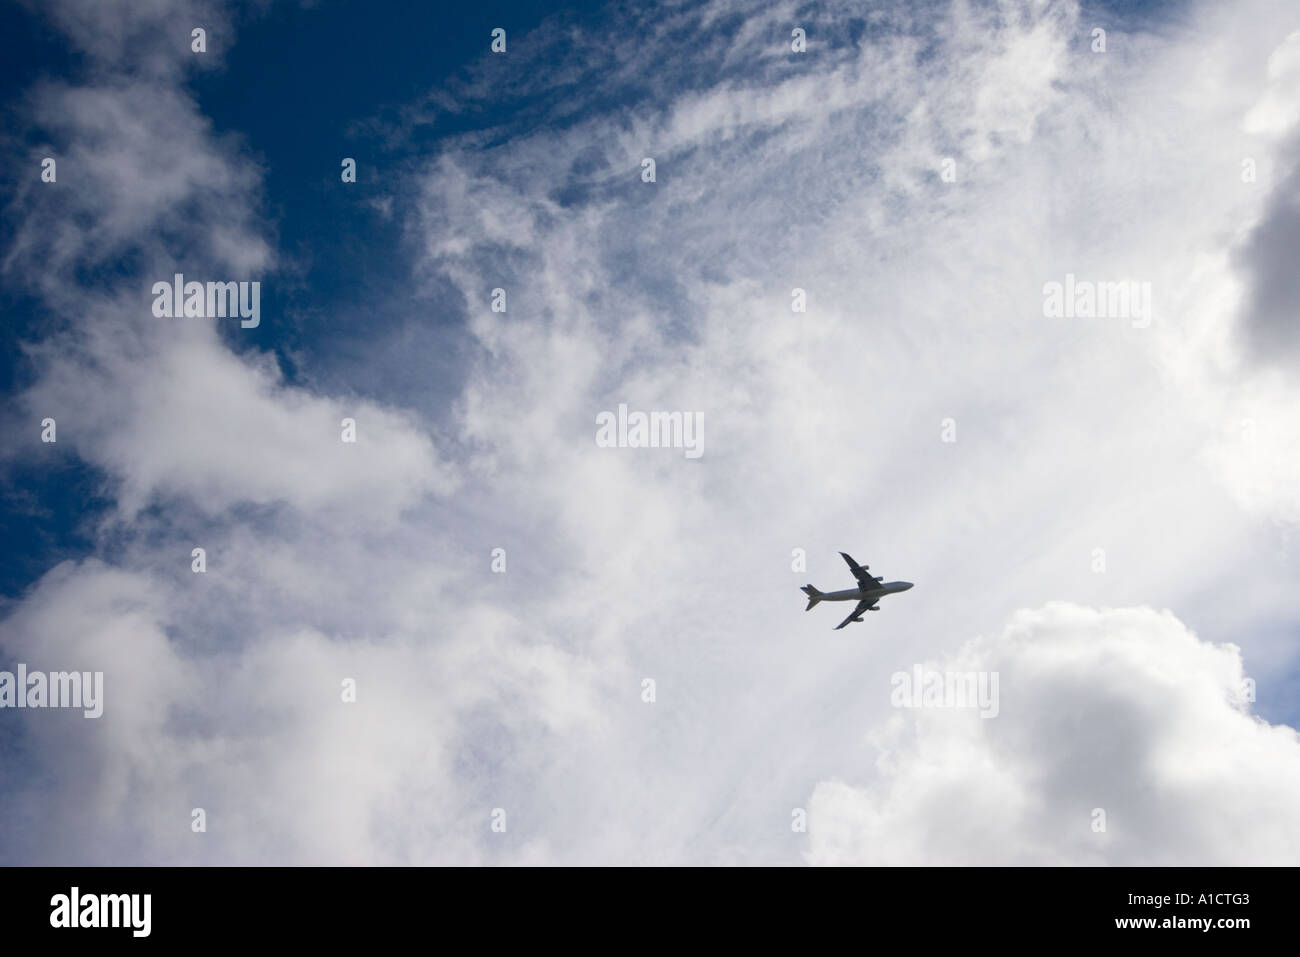 A silhouette of a flying jumbo jet against a partly cloudy sky Stock Photo